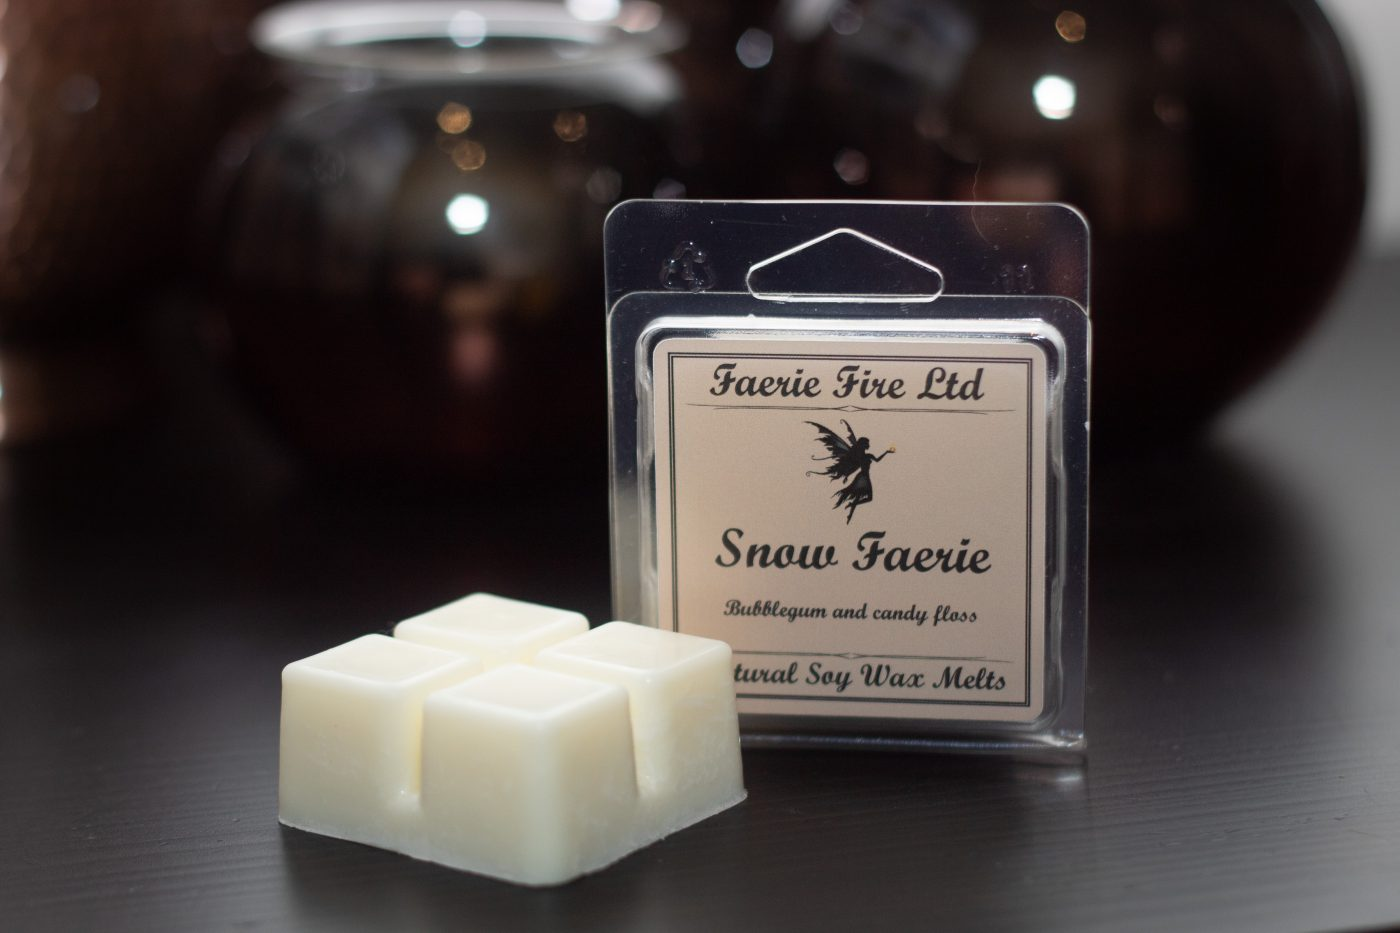 Snow Faerie Wax Melt Clam Shell Small 1 scaled